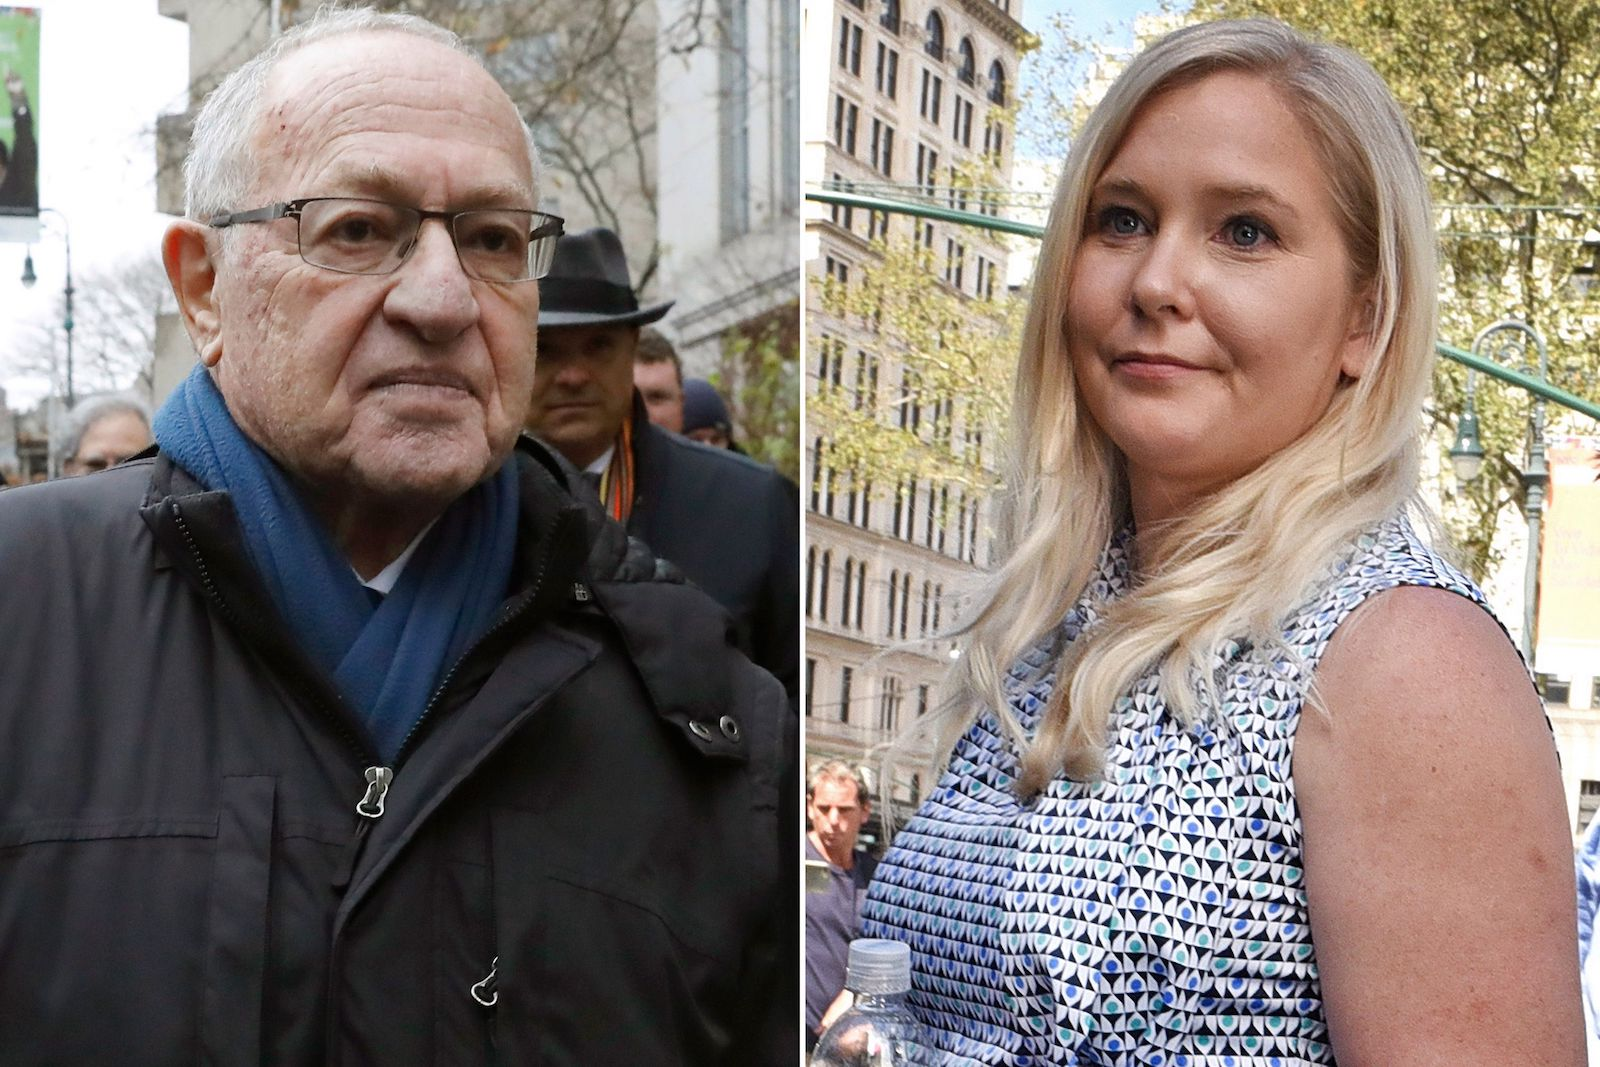 As Alan Dershowitz's lawsuit against one of Epstein's victims starts up, many are wondering if Dershowitz will expose Les Wexner in the process.